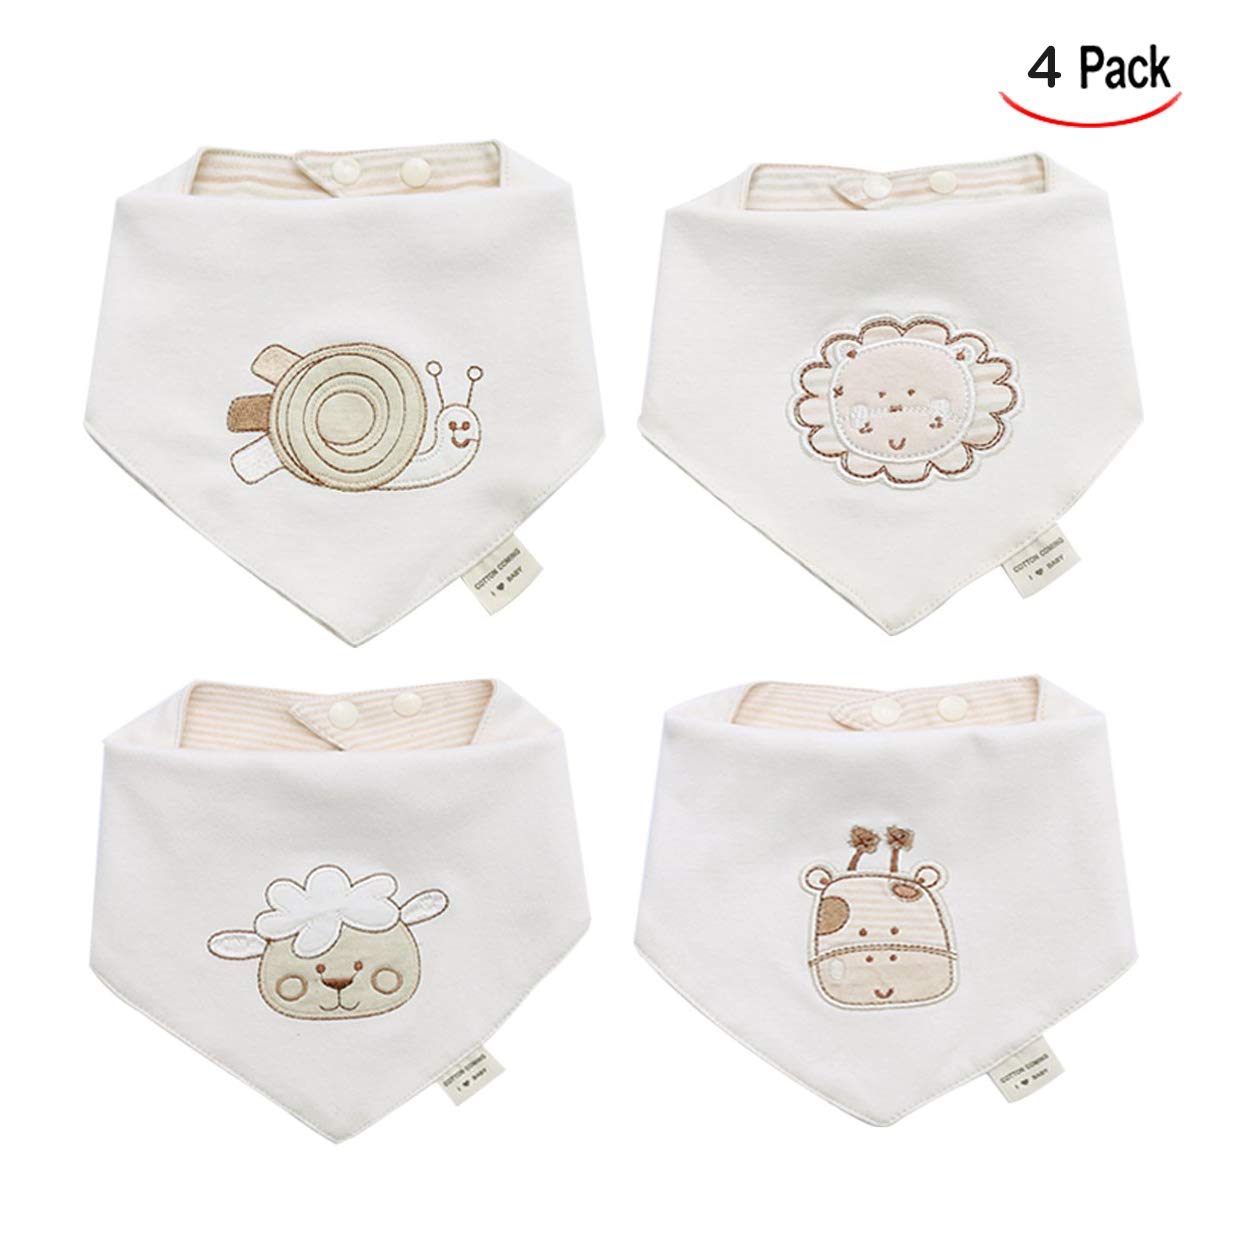 Infants and Toddlers iwobi 4 Pcs Baby Bandana Bibs for Girls Boys Unisex Set Cotton Drool Bibs for Newborns